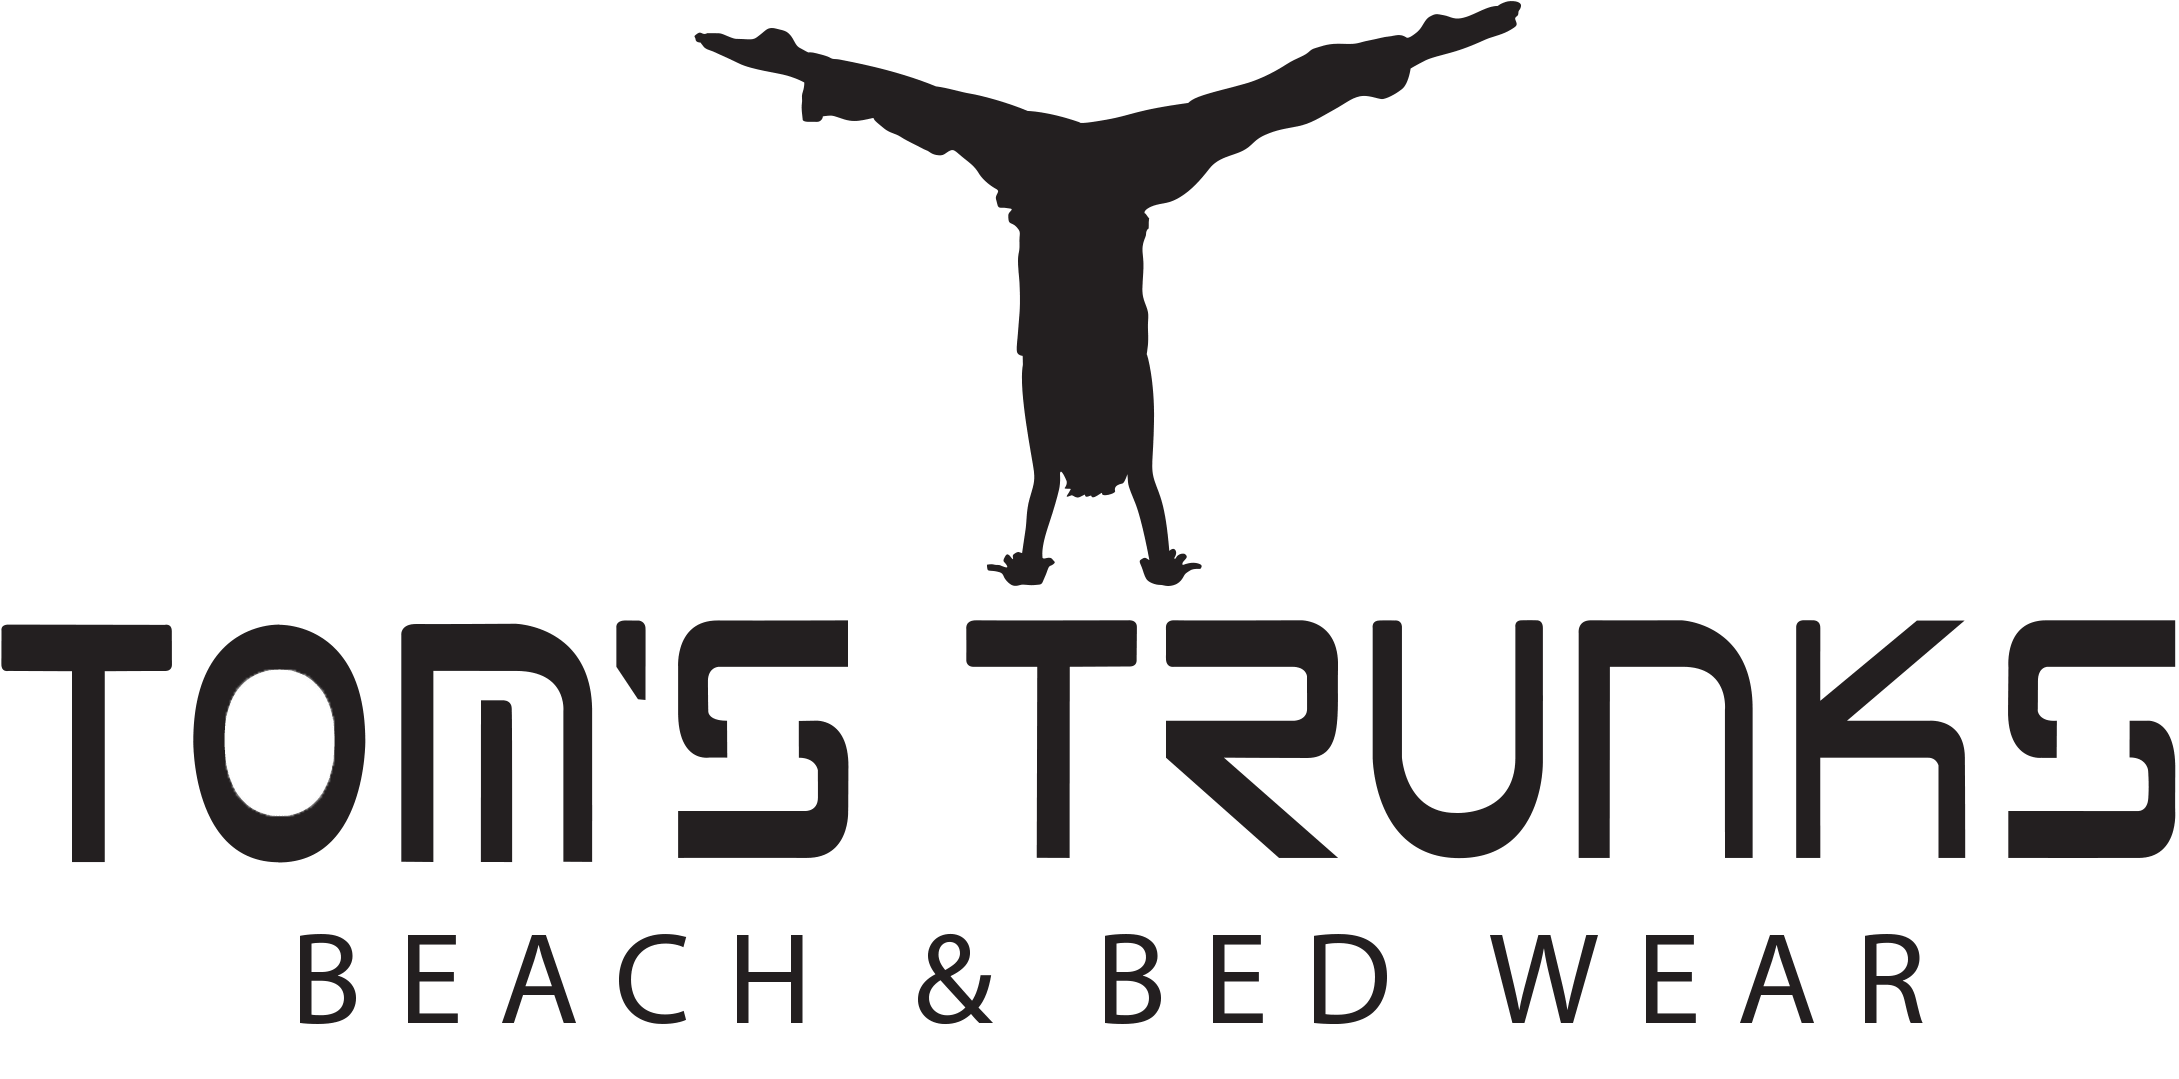 Black Tom's Trunks logo